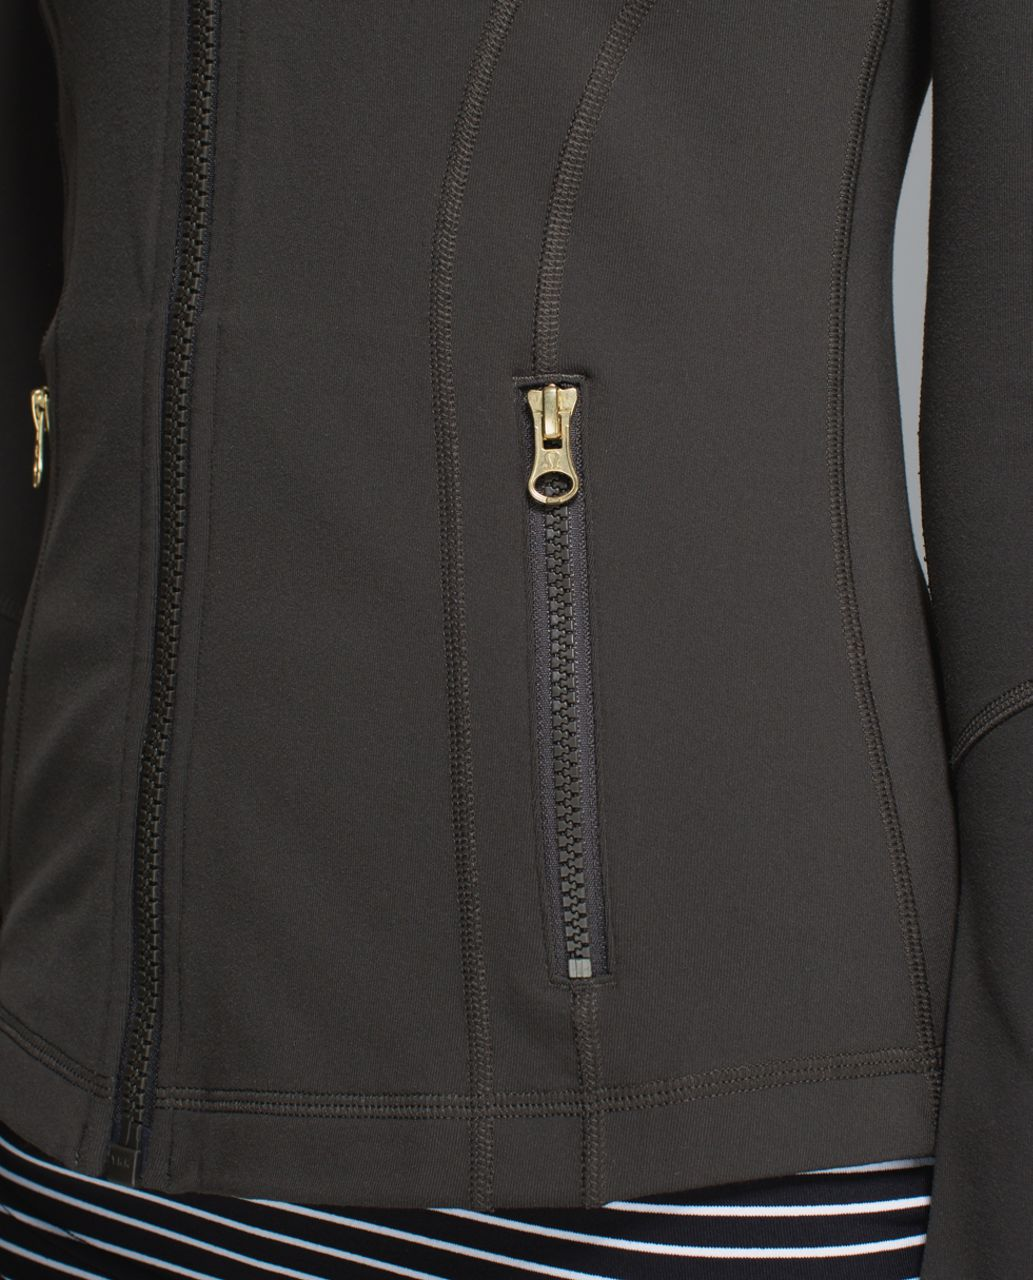 Lululemon Define Jacket - Dark Wren